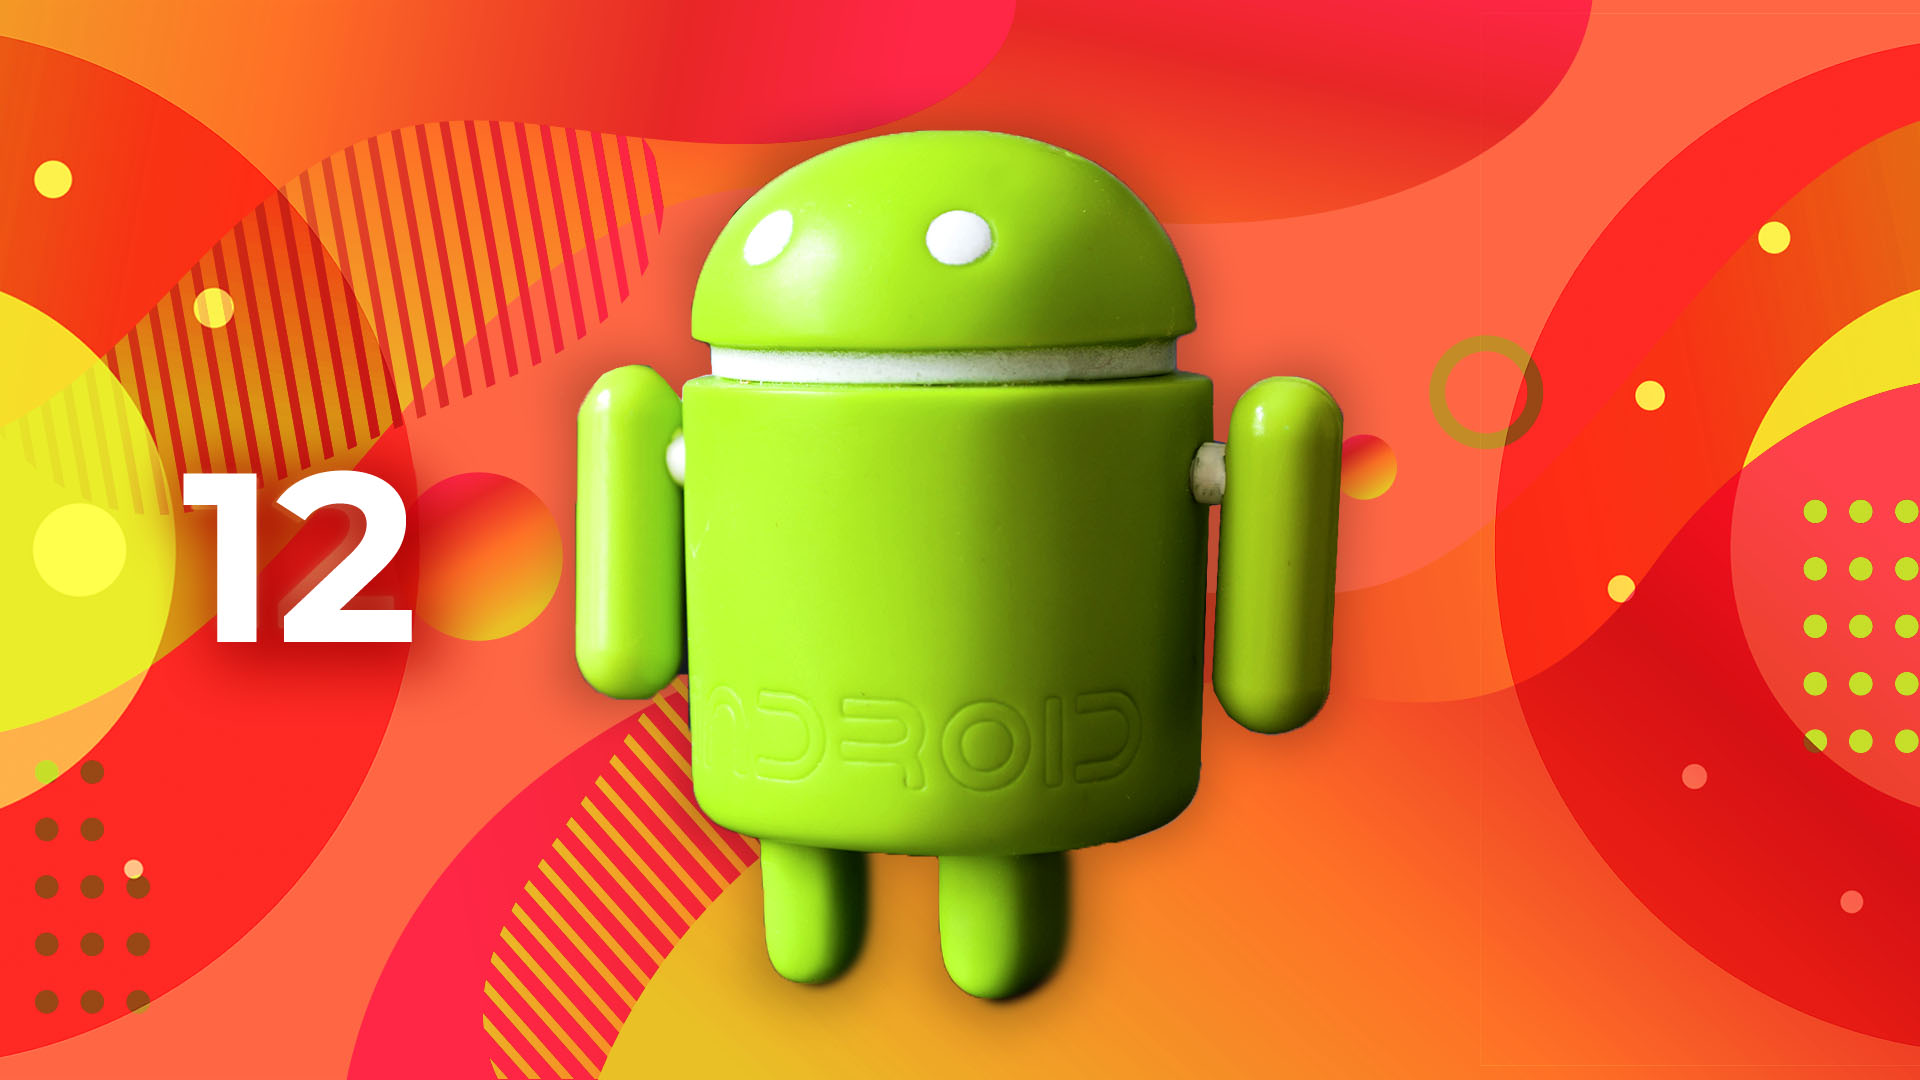 Android, Google Android, Android Logo, Bugdroid, Android Figur, Android Männchen, Android 12, Google Android 12